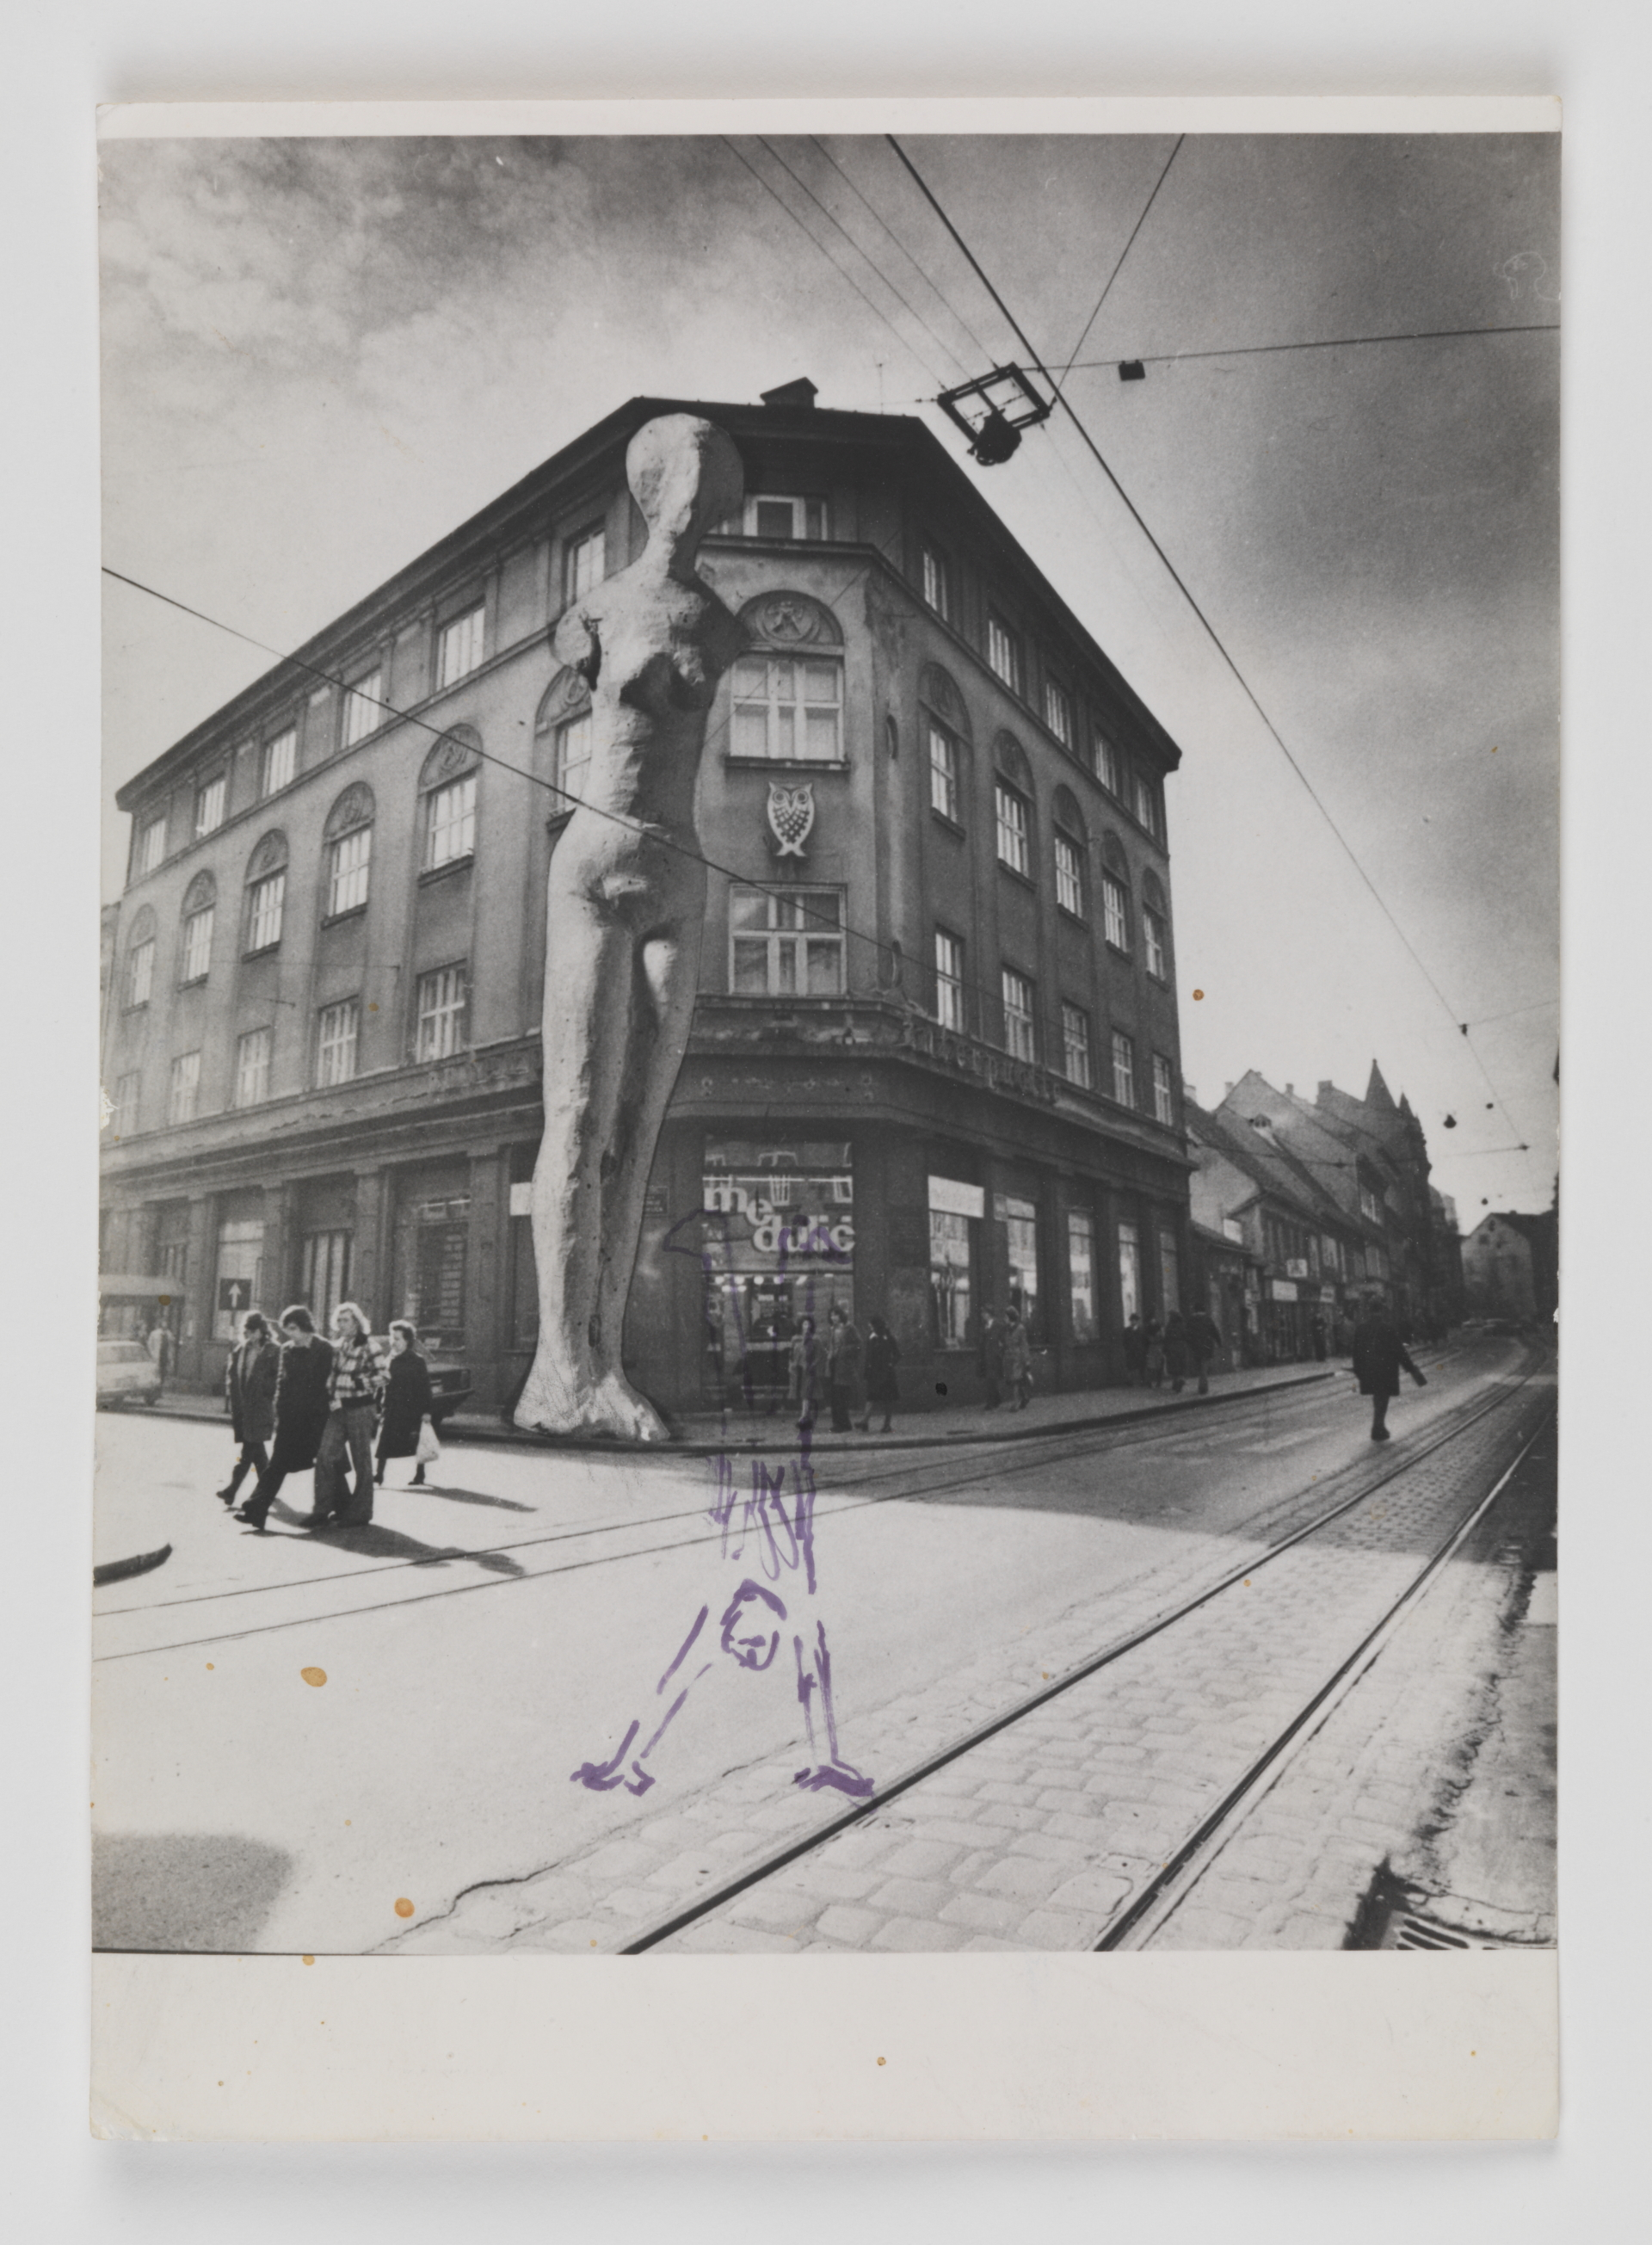 Monument to a Barmaid, collage on b/w photograph, 14 x 18 cm, 1972